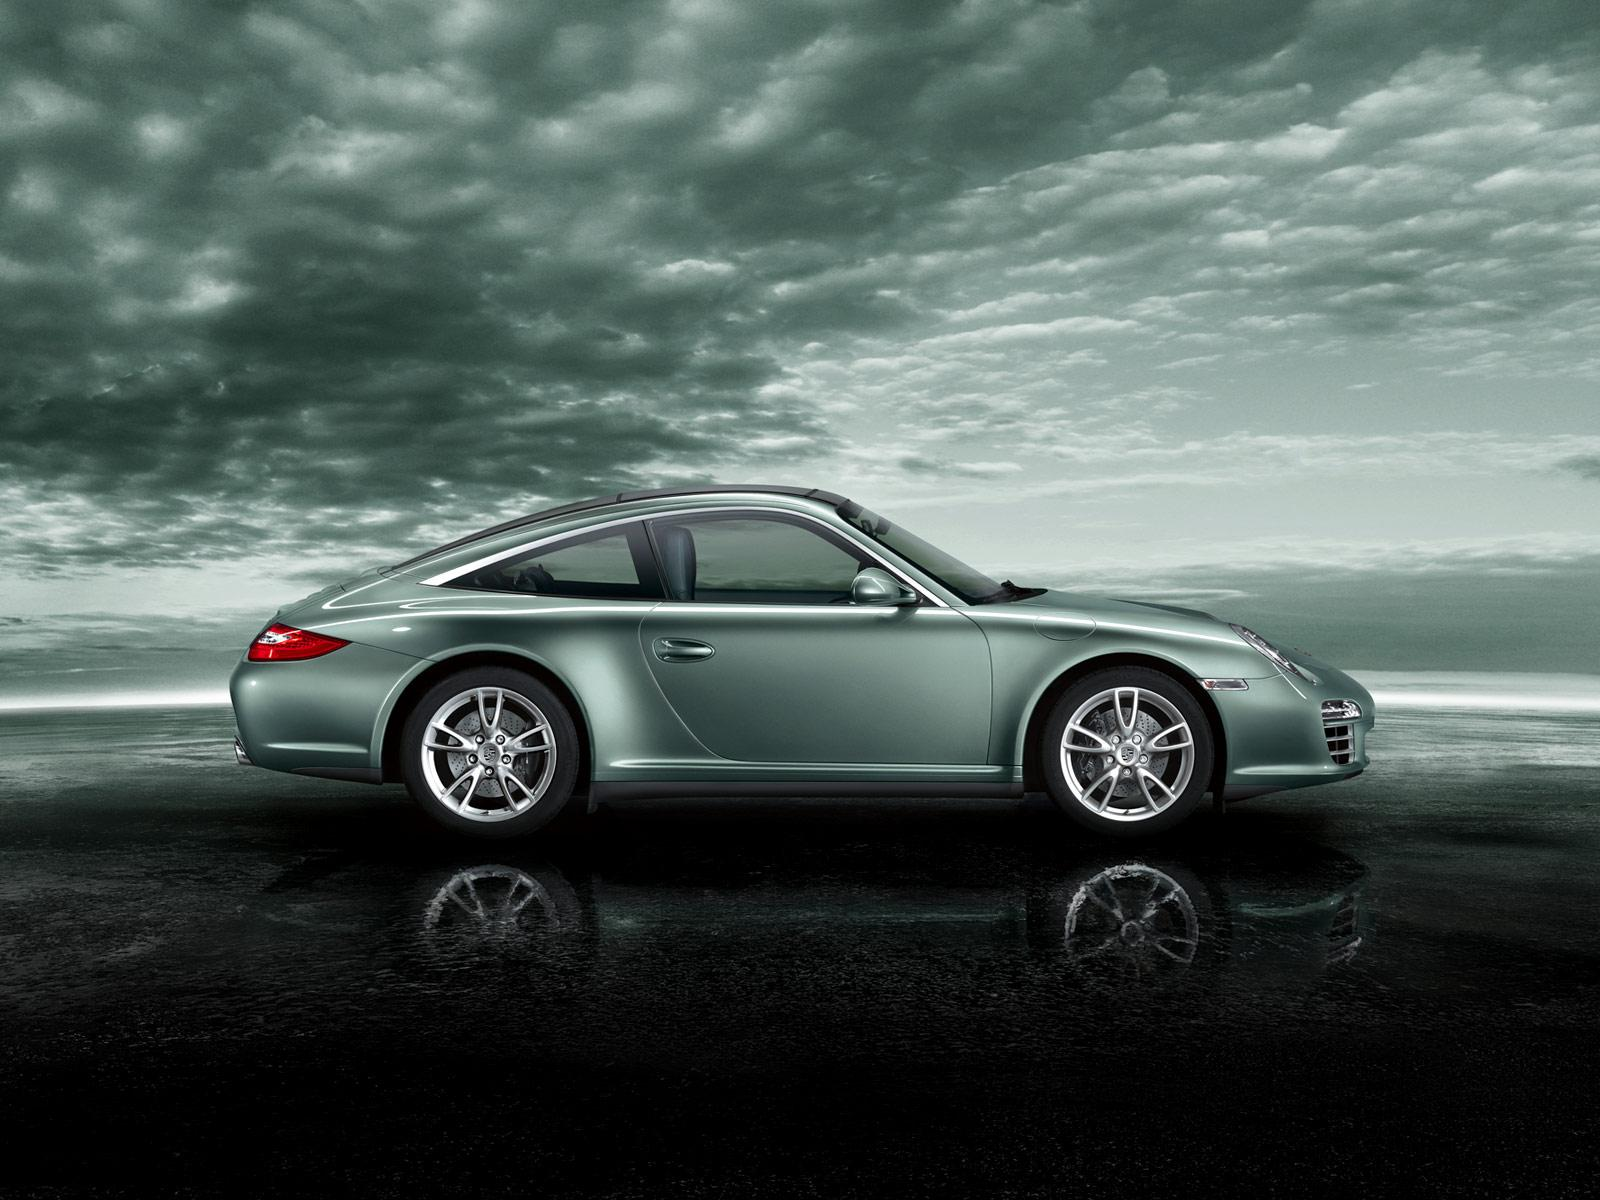 2009 Porsche 911 Targa 4 Technical Specifications and data. Engine ...